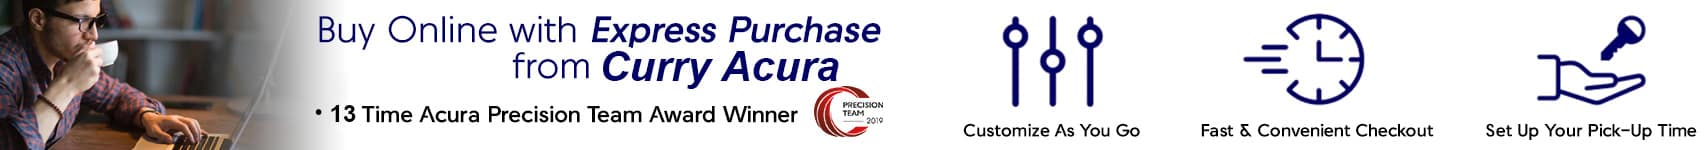 Curry-Acura-Express-Purchase-Pencil-Banner